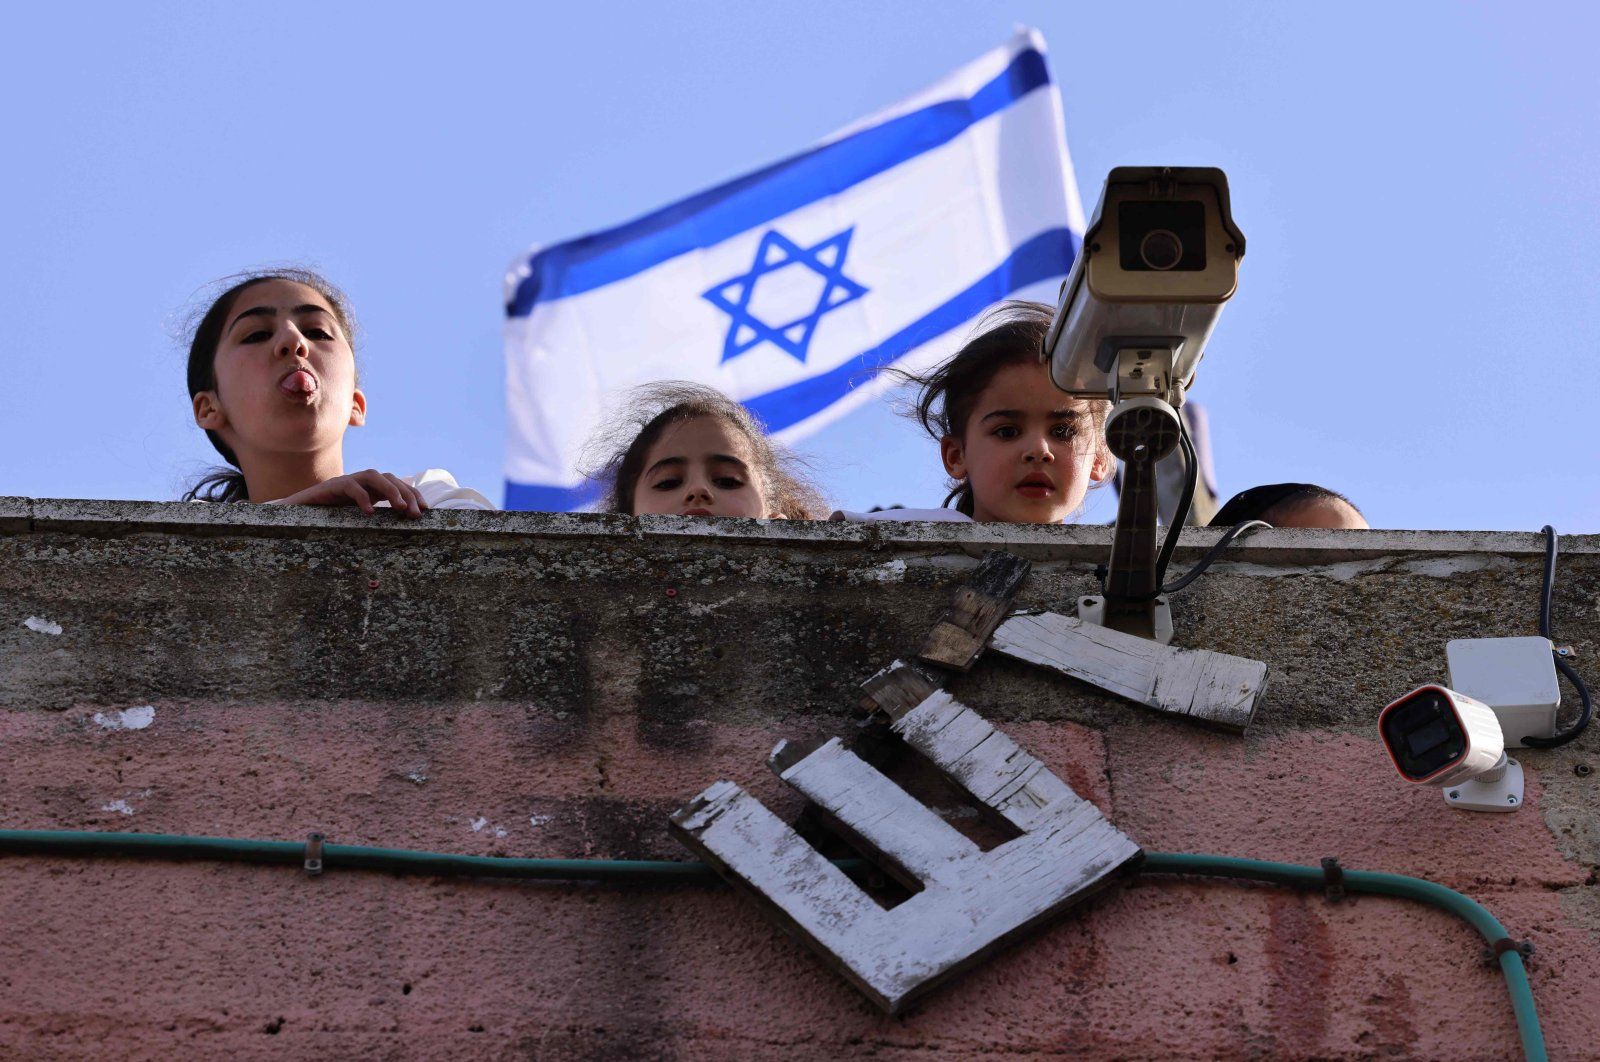 Children of Israeli settlers in the Palestinian neighbourhood of Sheikh Jarrah react as Palestinian and Israeli activists chant slogans in front of their house during a demonstration against the expulsion of Palestinian families from their homes in Israeli-occupied East Jerusalem, April 16, 2021. (AFP Photo)